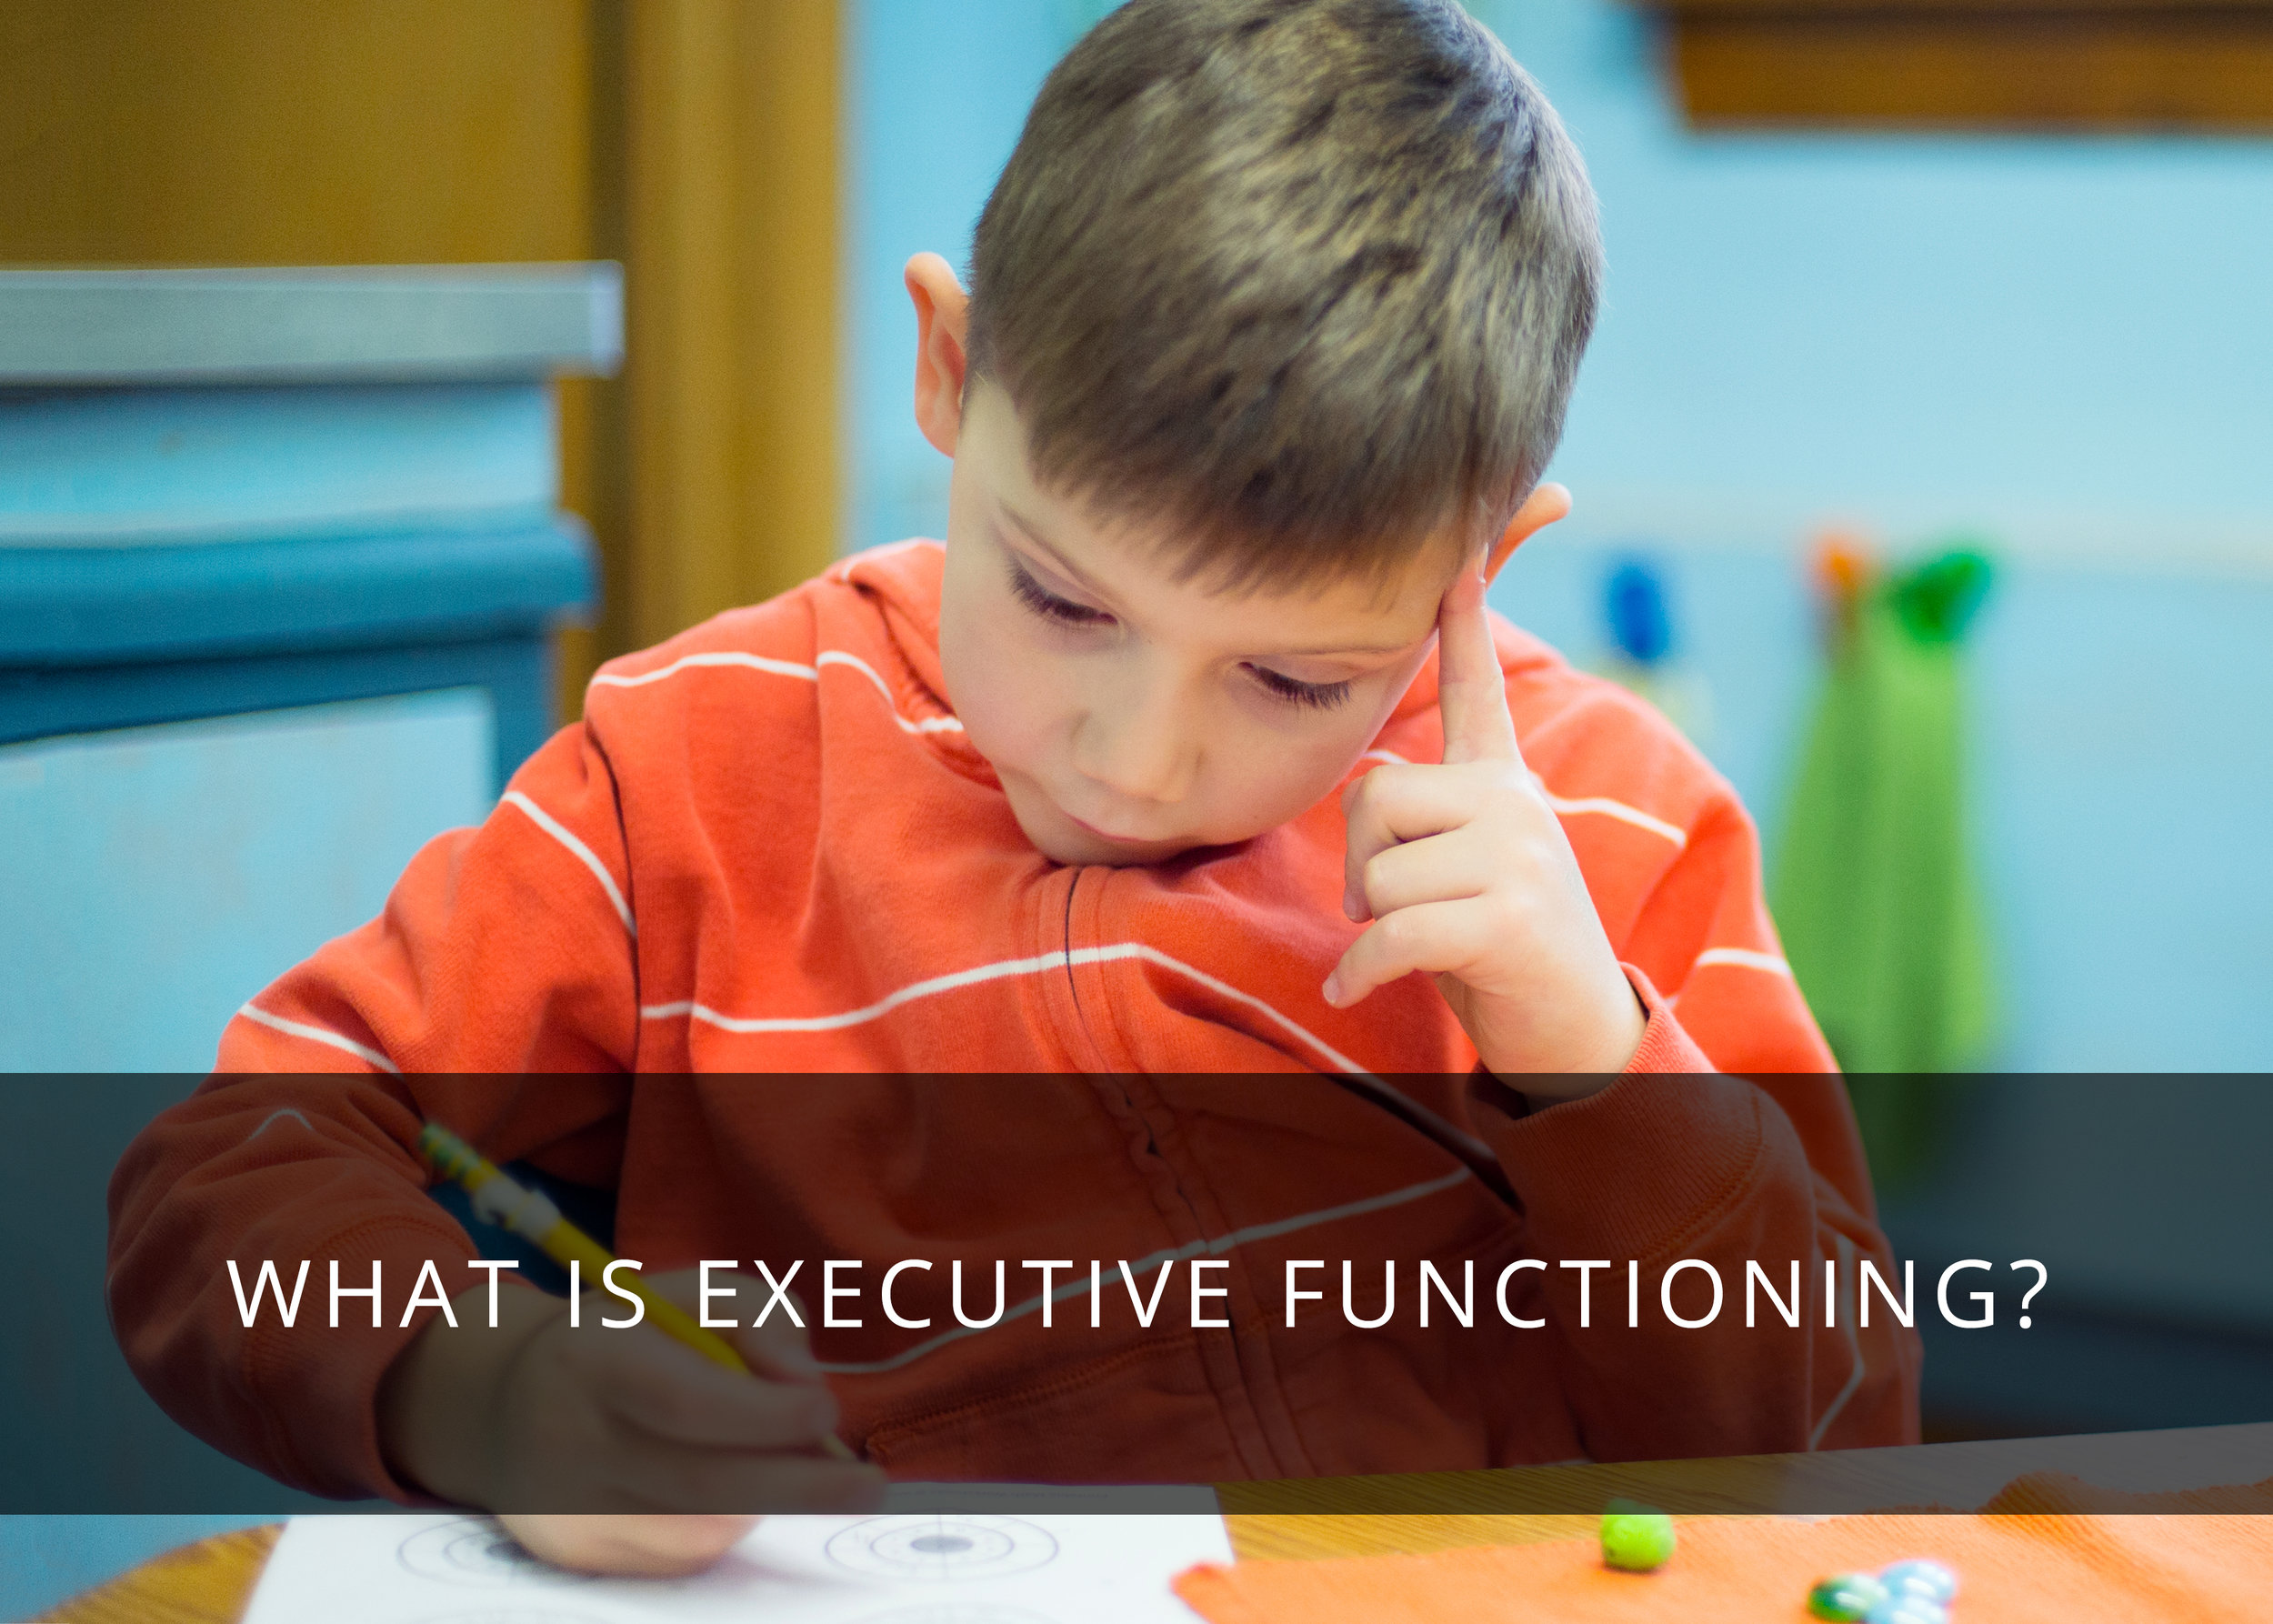 Executive Functioning: What is It?